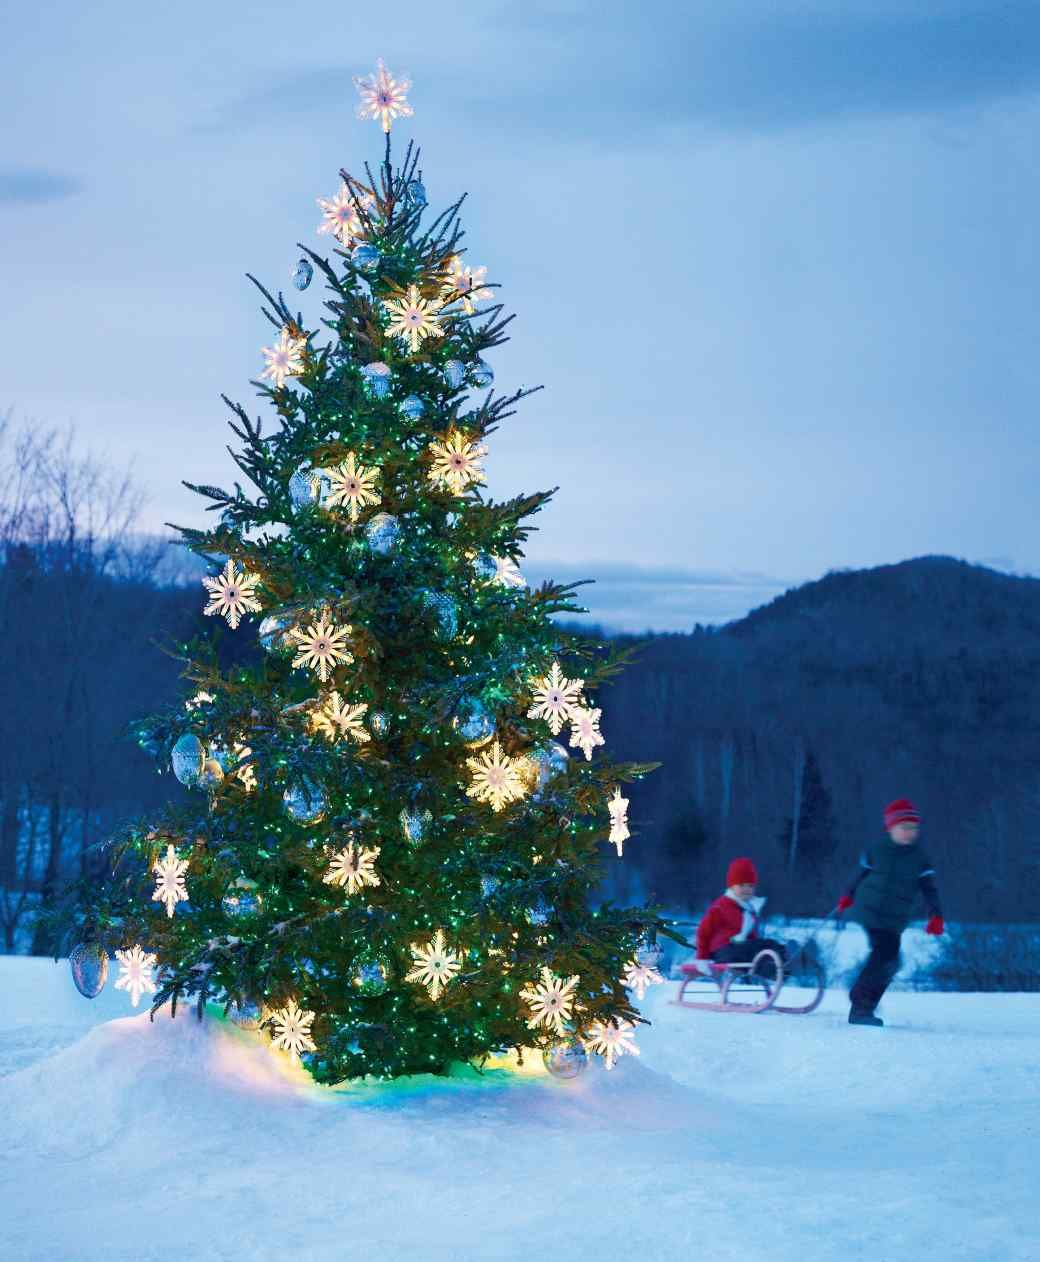 How To String Lights On A Christmas Tree Outdoor Christmas Tree With Snowflakes Glass Balls And String